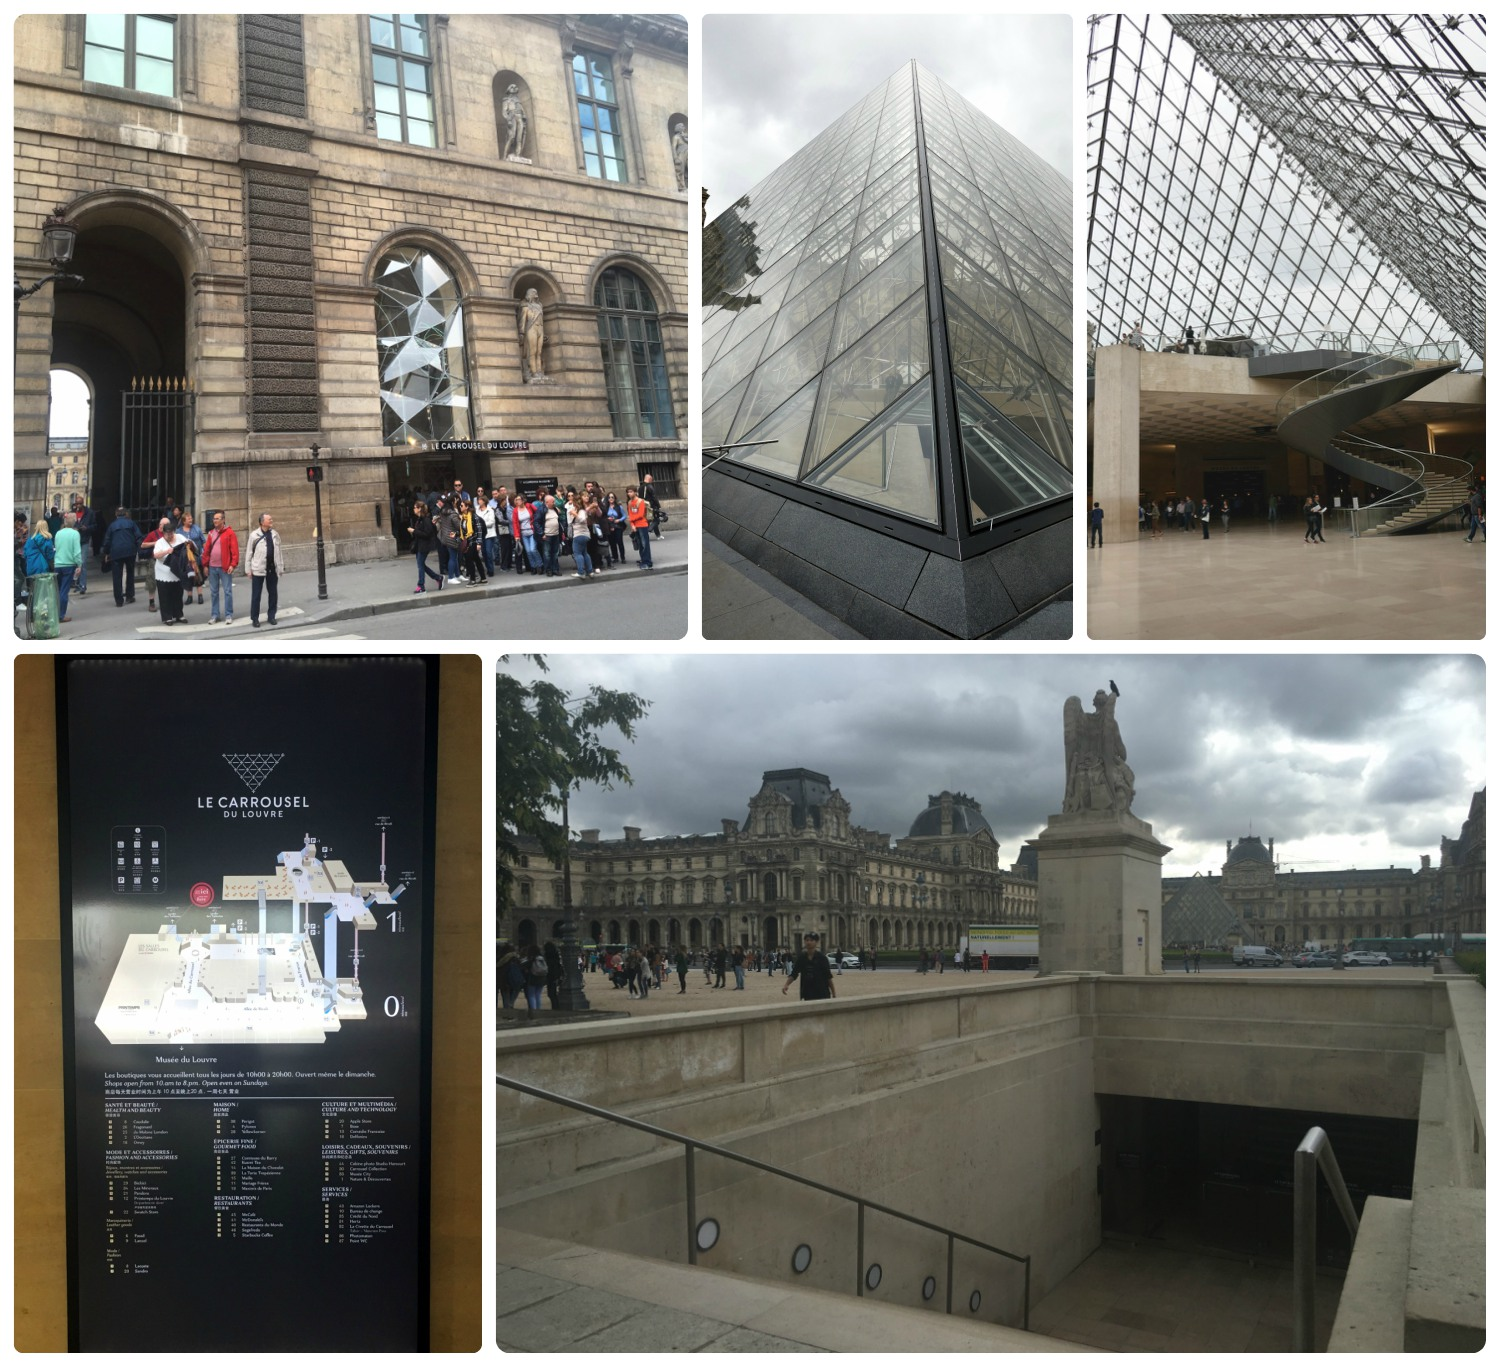 Clockwise (from the top): Taken from the Palais-Royal/Musée de Louvre metro station - the large archway leads to the courtyard where the main entrance is - but the smaller doorway to the right is an alternate entrance to 'Le Carrrousel', looking into the pyramid where you can see the escalator that takes visitors down to the main lobby, the main lobby of The Louvre under the glass pyramid, the stairway on the side of the Arc du Carrousel that leads to the lesser known entrance, a map of the Le Carrousel.